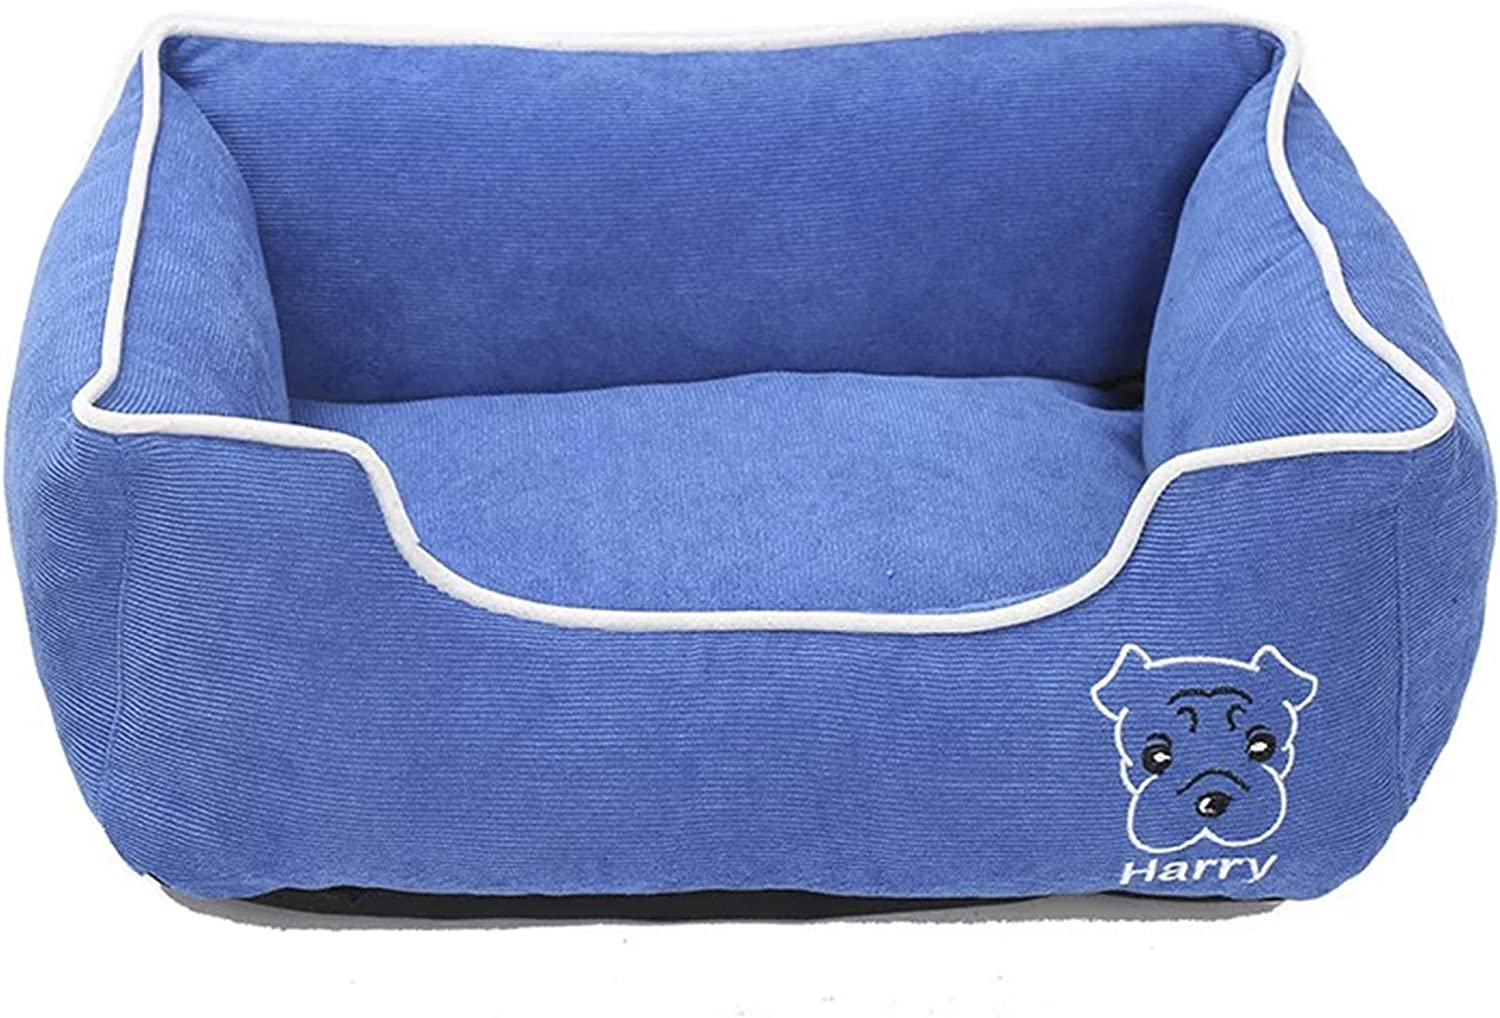 washable /& scratch-resistant house for dogs and cats thematys Pet basket made plush fabric in 5 different colours and 4 sizes Style 3, S